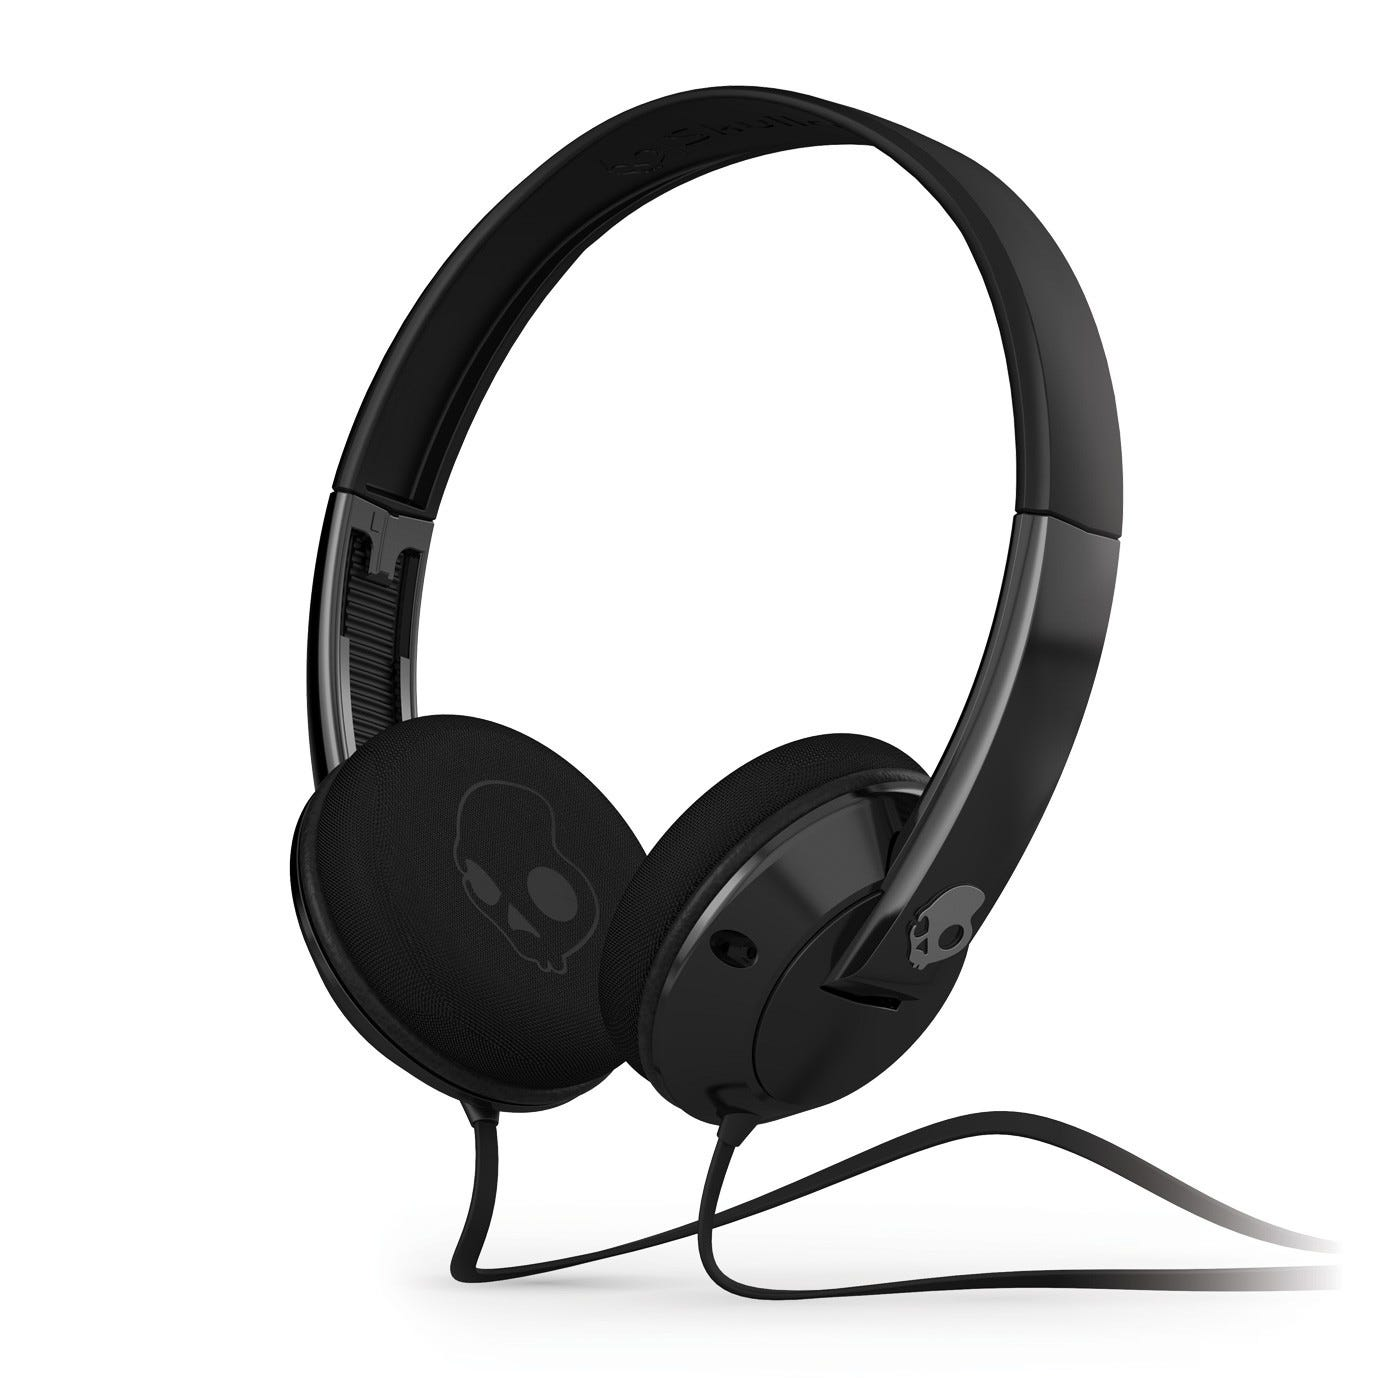 Car Toys coupon: Skullcandy Uprock On ear Headphones | Black